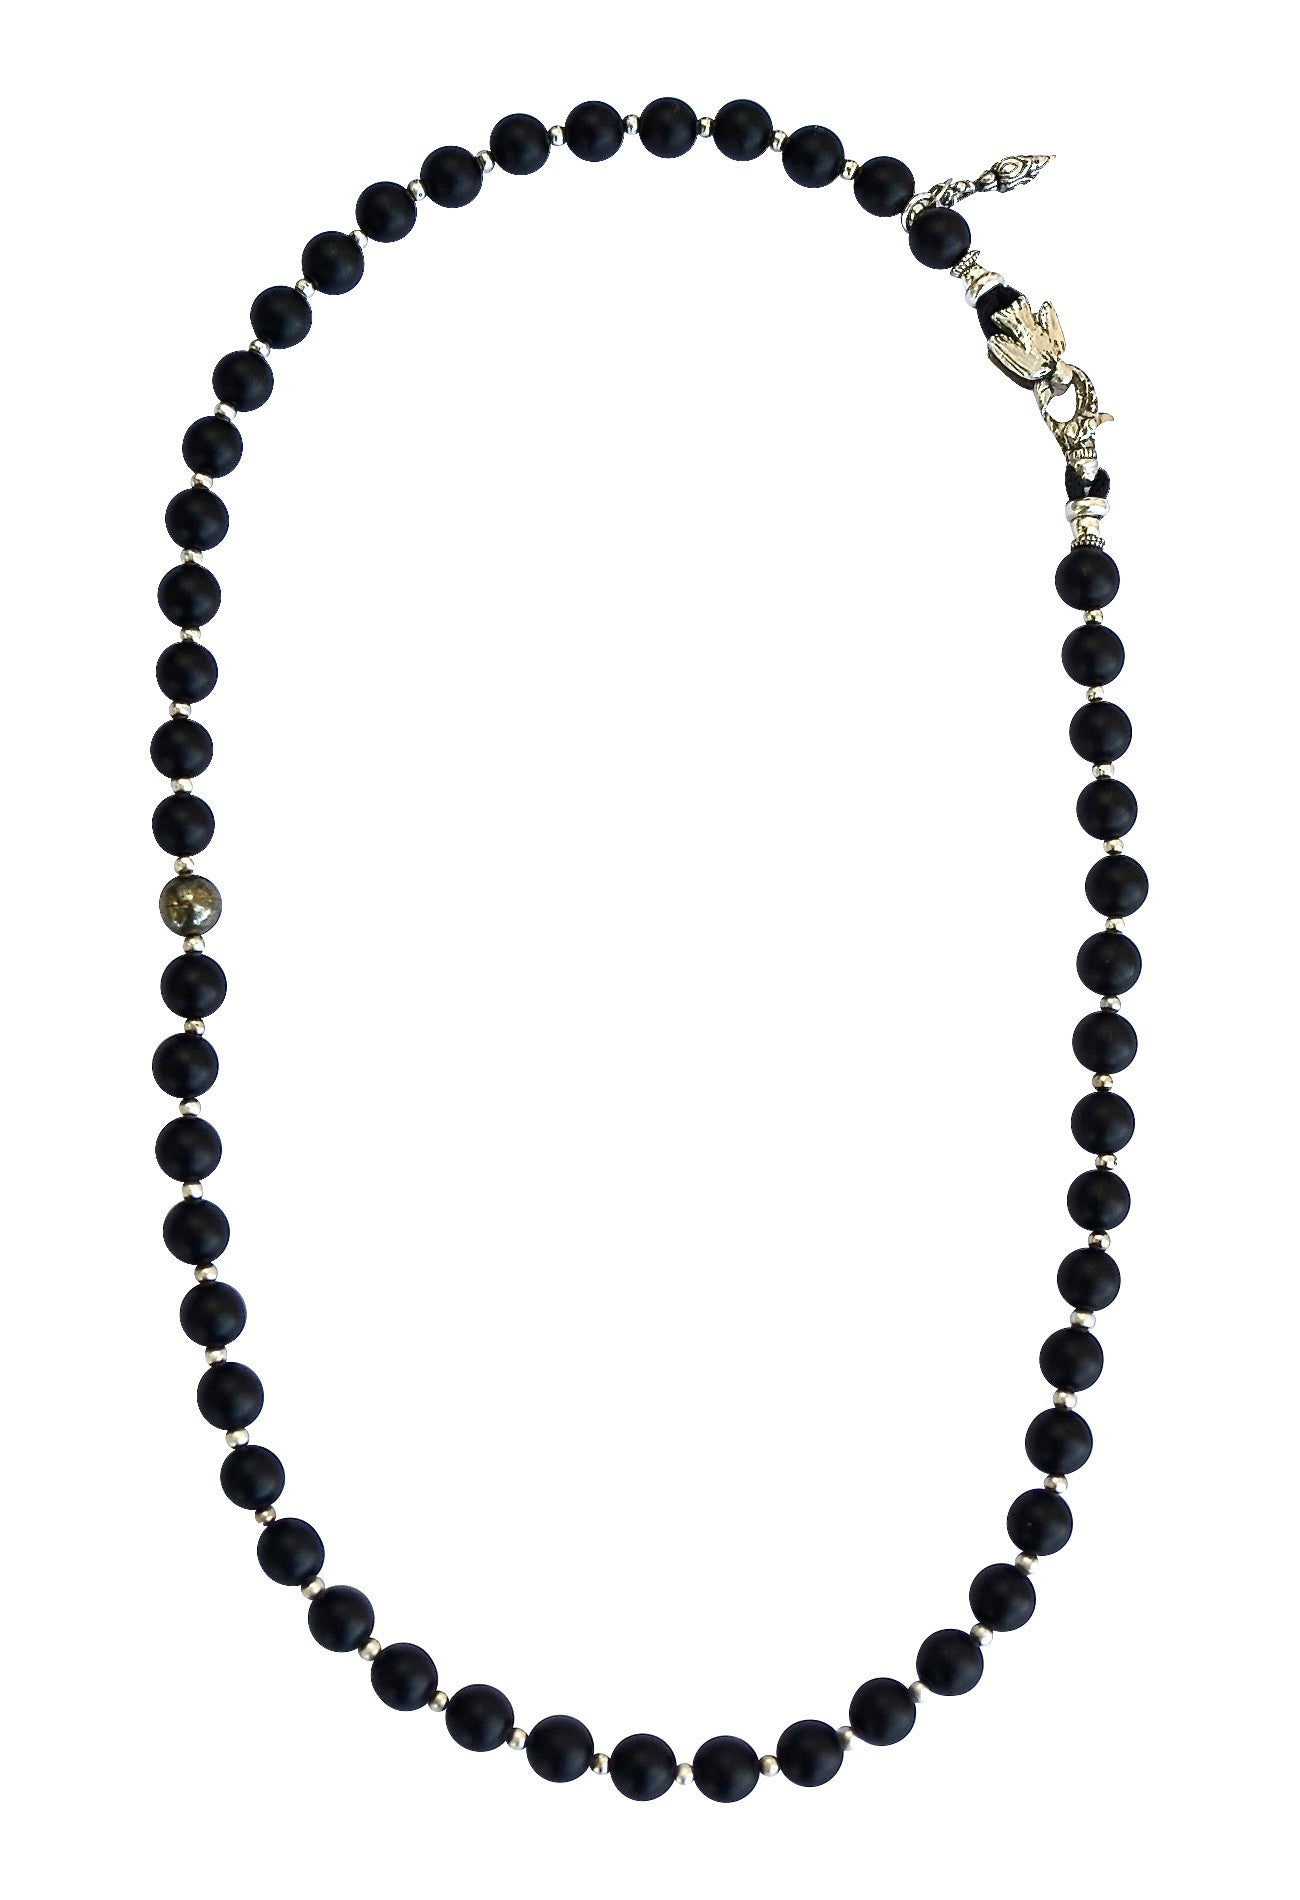 artwear of black stellascloset colombian pendant natural emerald stones on onyx necklace and mixed metal shop